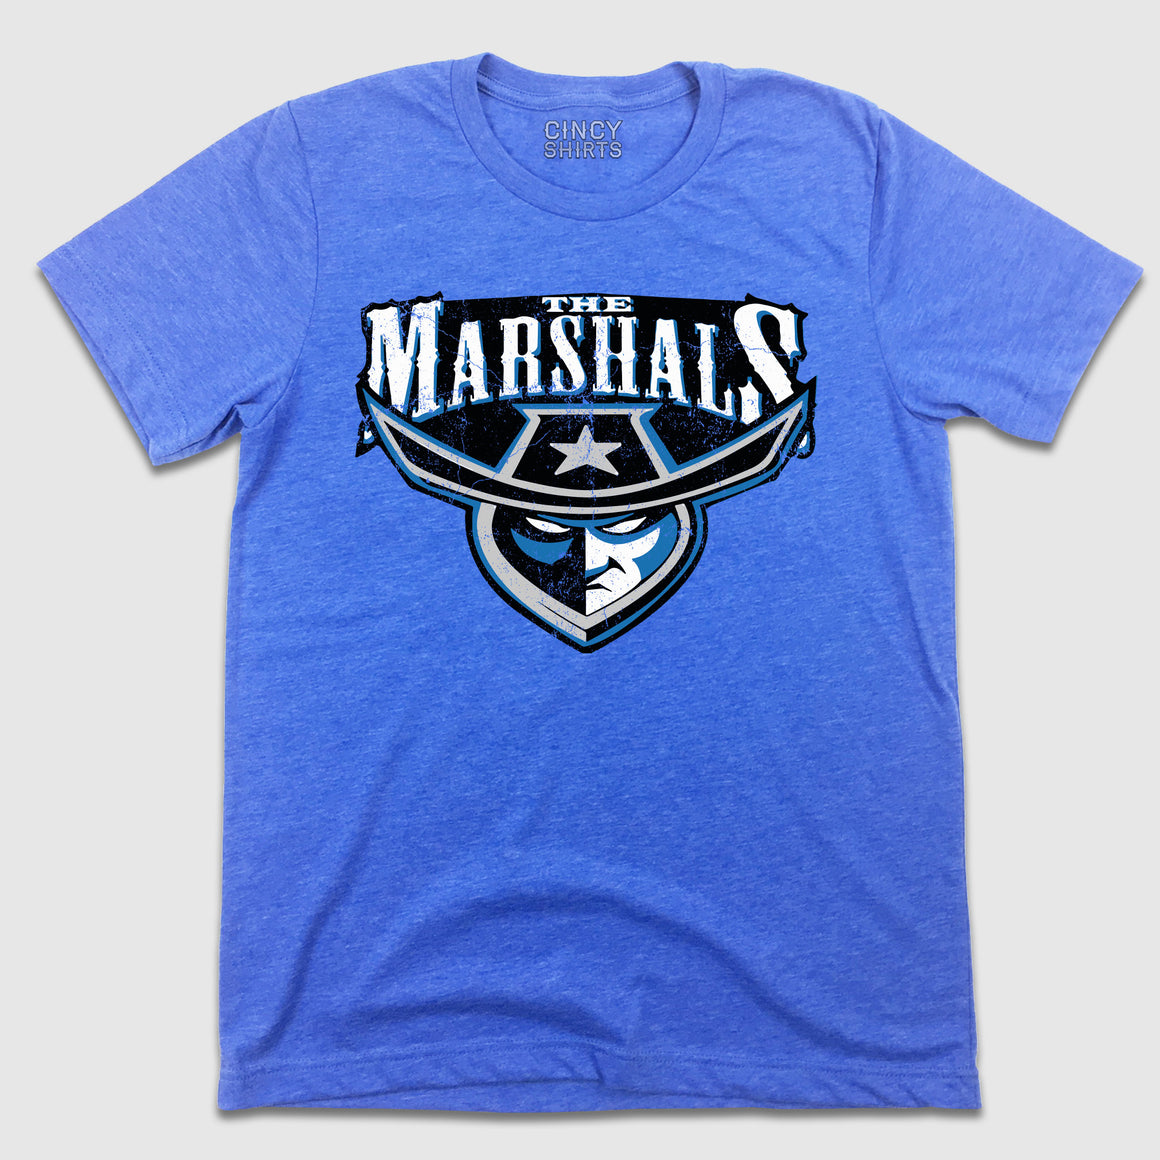 The Cincinnati Marshals indoor football team T-shirt